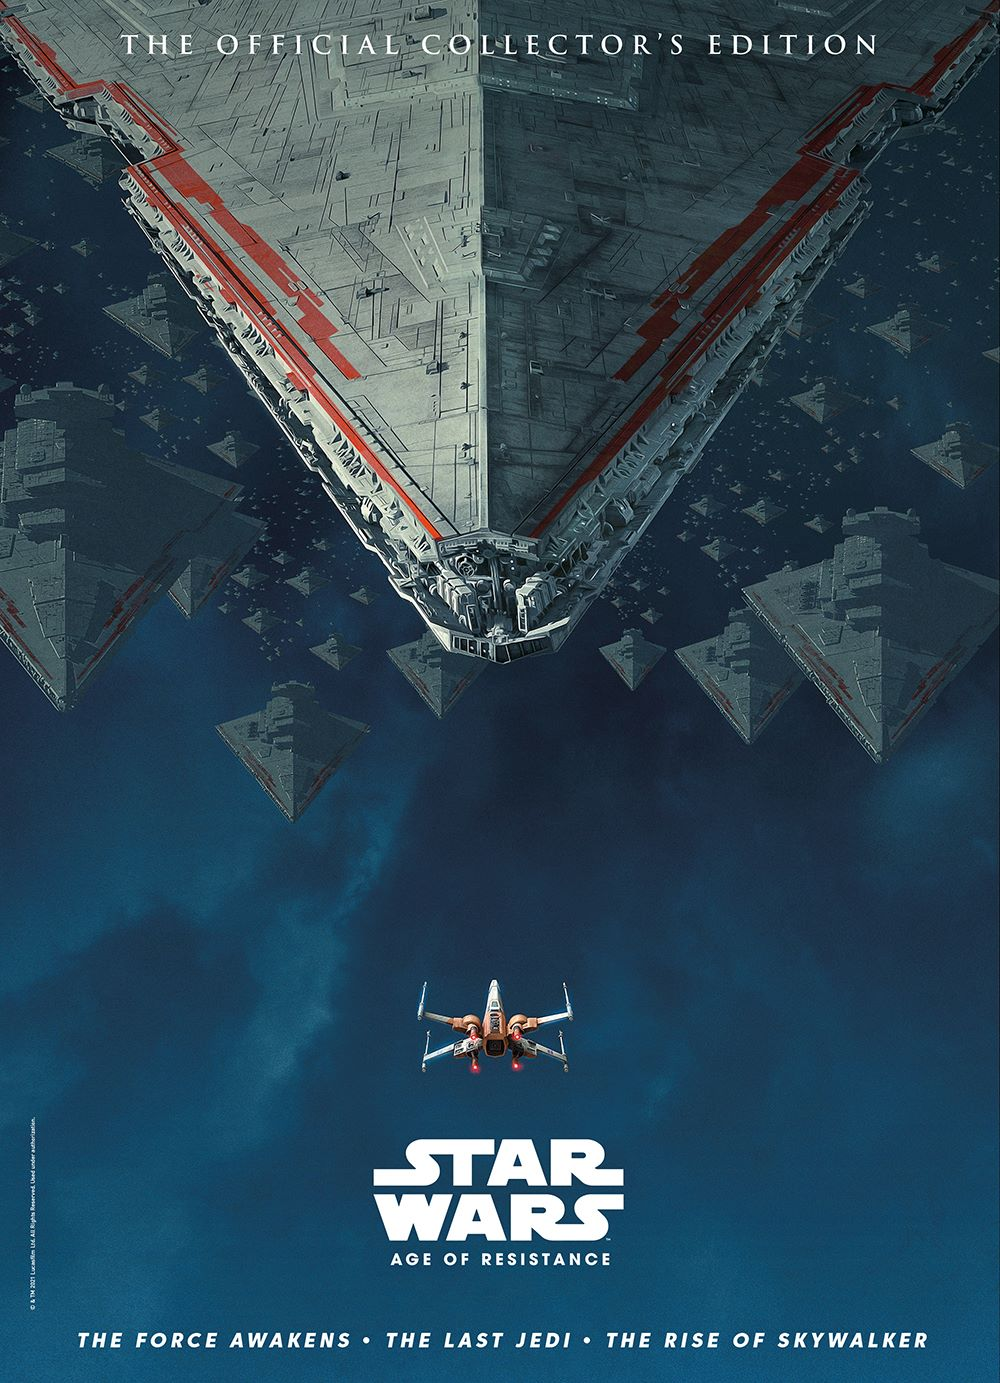 starwars_ageofresistance_exclusive ComicList Previews: STAR WARS THE AGE OF RESISTANCE THE OFFICIAL COLLECTOR'S EDITION HC